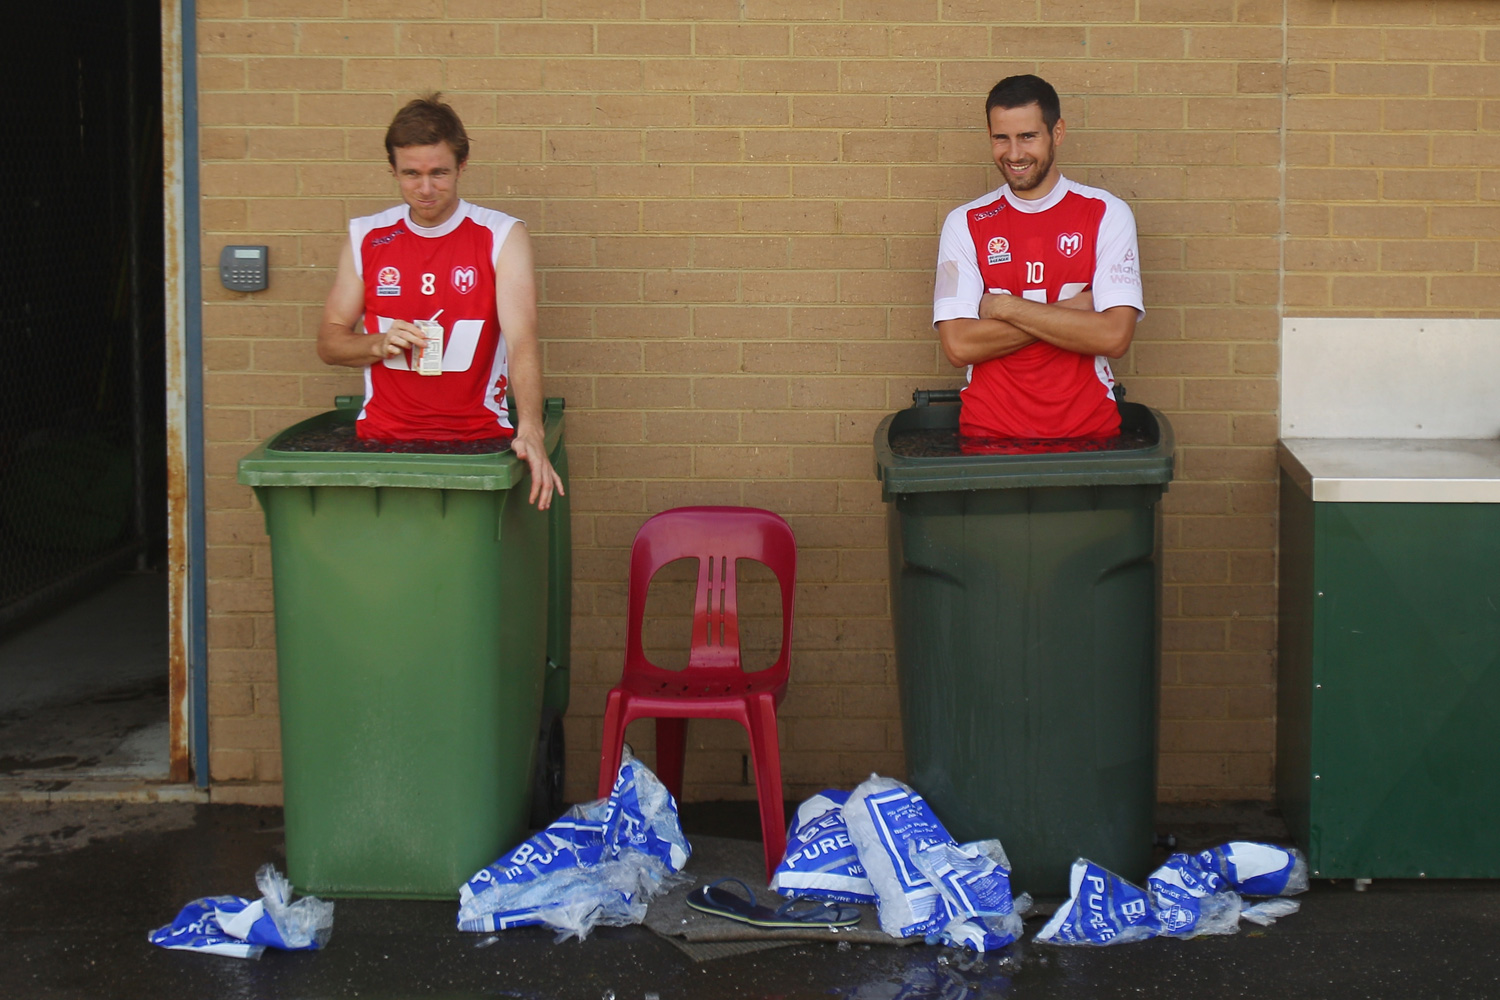 Matt Thompson, who holds the record for most games played in the A-League, and Josip Tadić, formerly of the Melbourne Heart look on as they stand in an ice bath during a training session at La Trobe University Sports Fields in 2013.